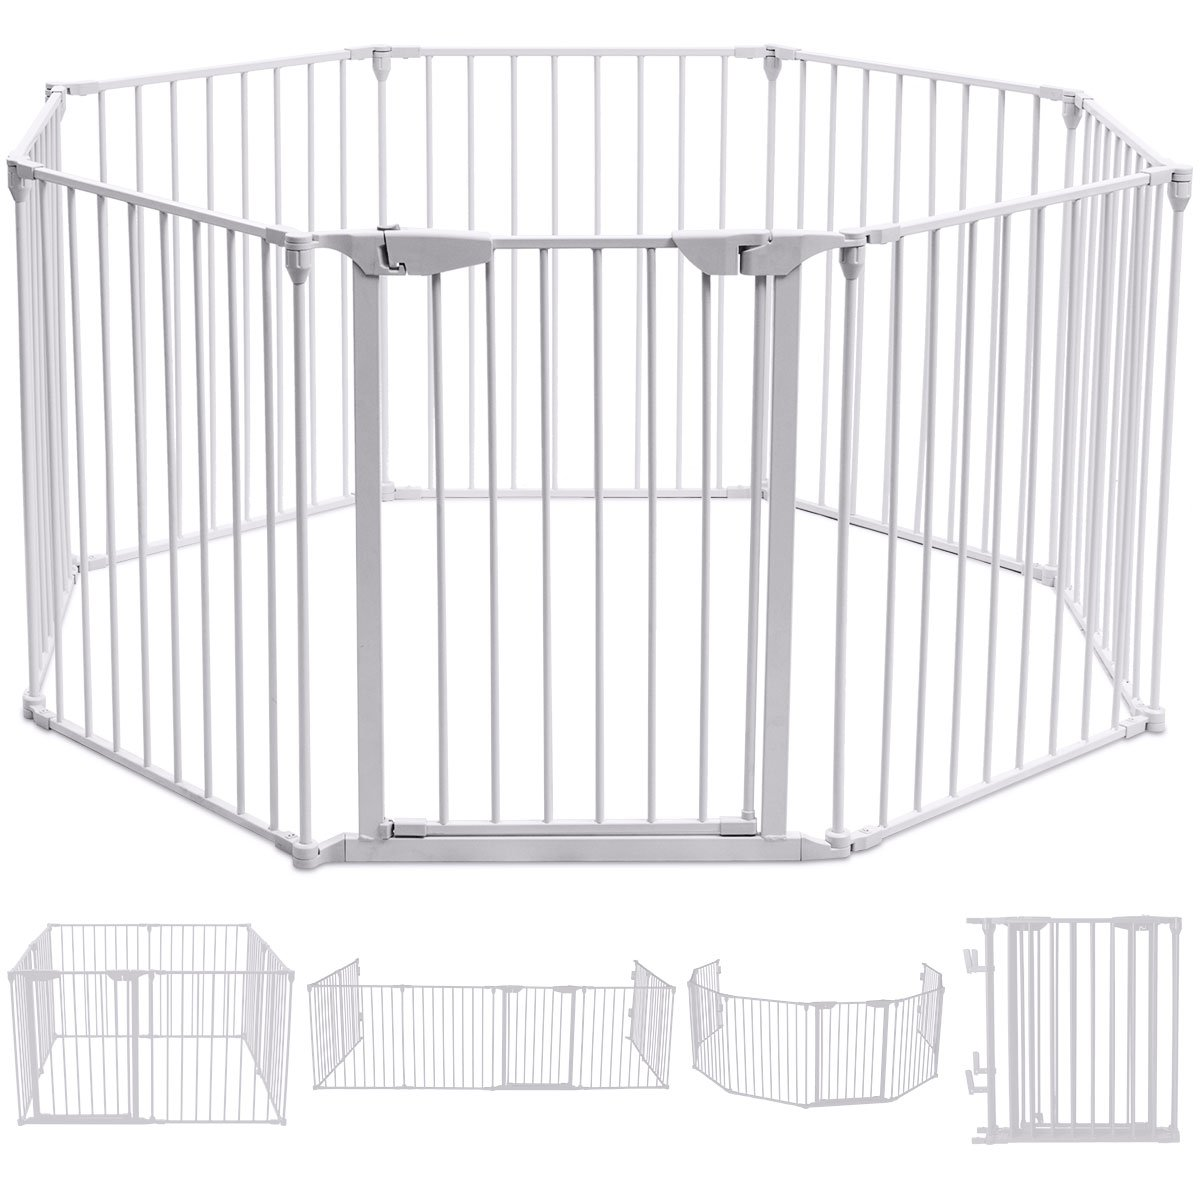 COSTWAY 6& 8 Panel Baby Playpen Metal Foldable Design Multiple Use for Pet Fence, Room Divider, Yard Barrie, Fire Guard (8 Panels, Black)